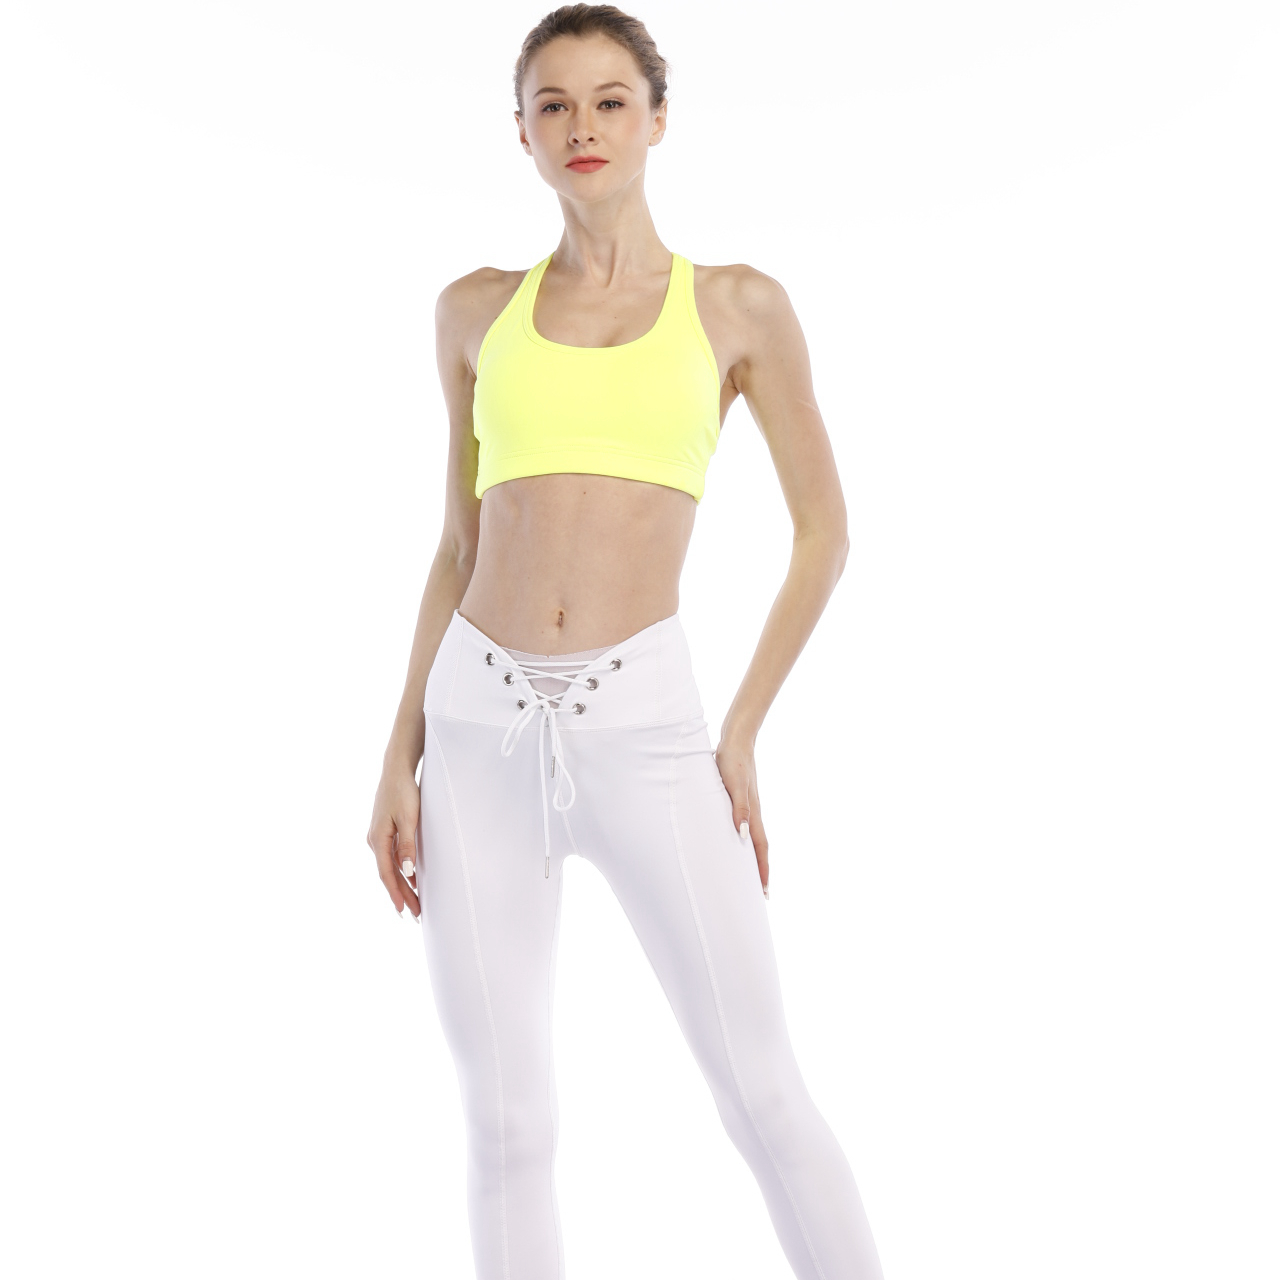 pure white gym wear slimming waist lace yoga pants